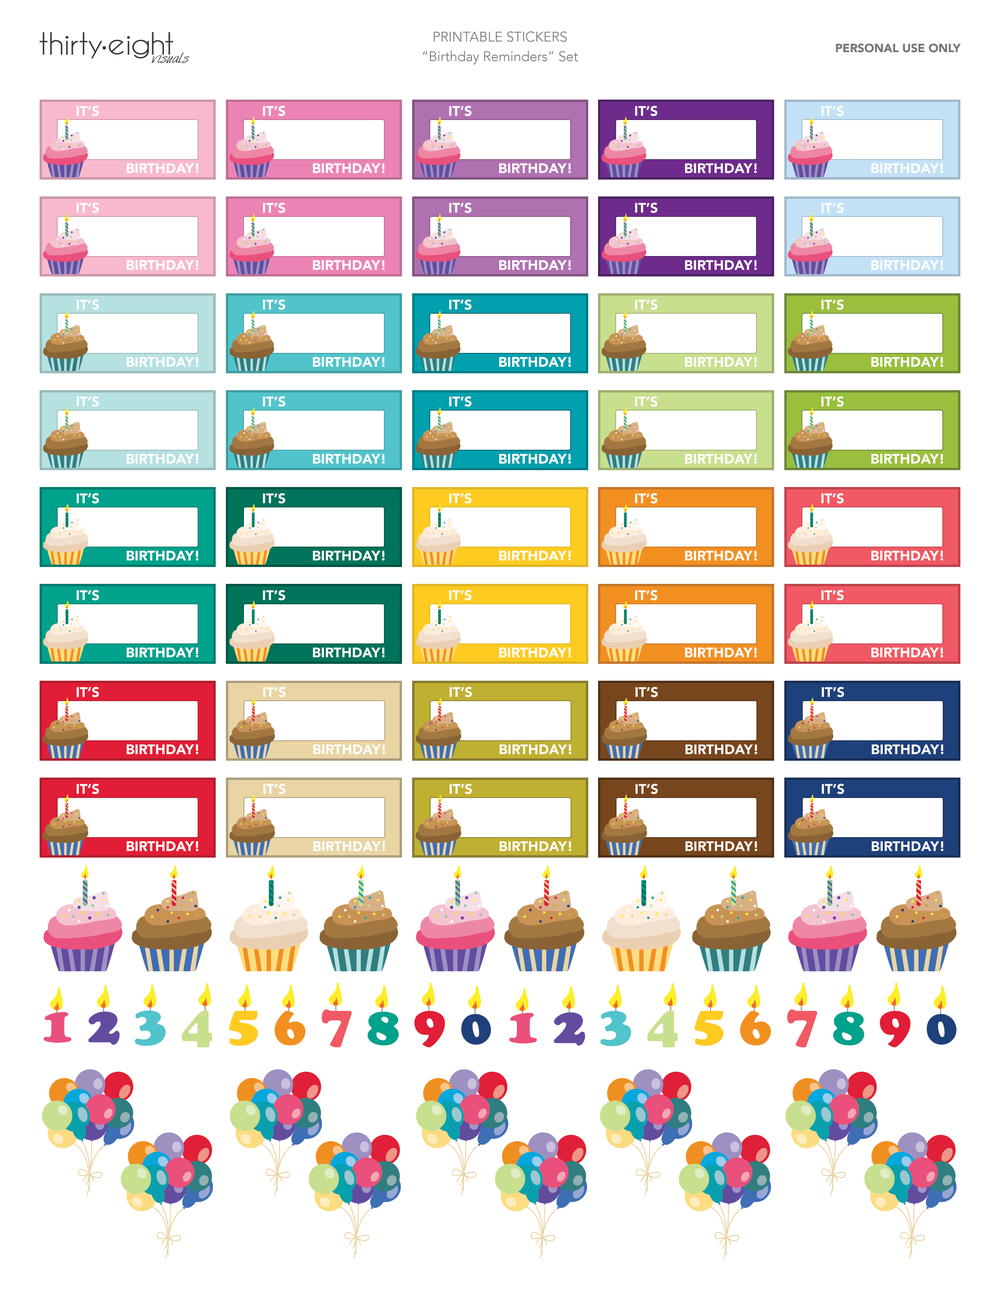 Cute birthday reminder stickers for your planner! Click here to get them!